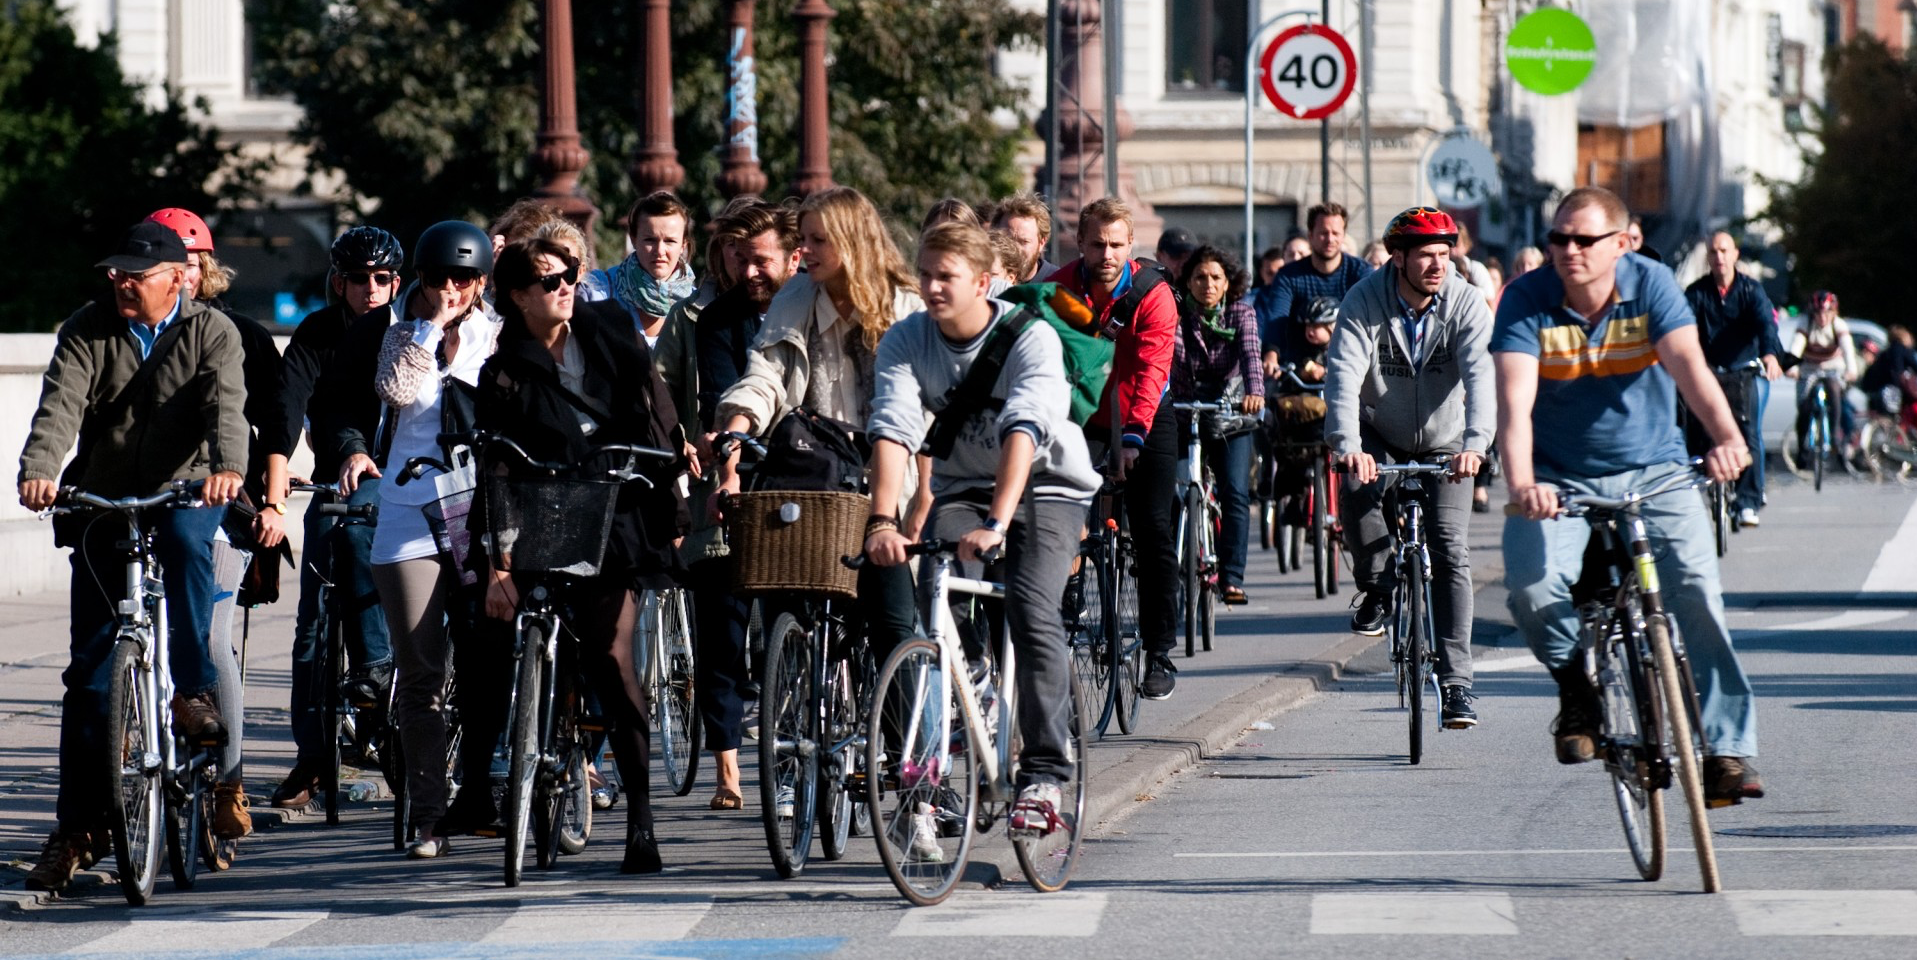 Cyclists line up at a red light in Copenhagen, Denmark—a city Edmonton could strive to emulate in small, affordable steps toward better bike infrastructure and public education, says UAlberta urban planner Manish Shirgaokar. (Photo: Heb@Wikimedia Commons, CC BY-SA 3.0)